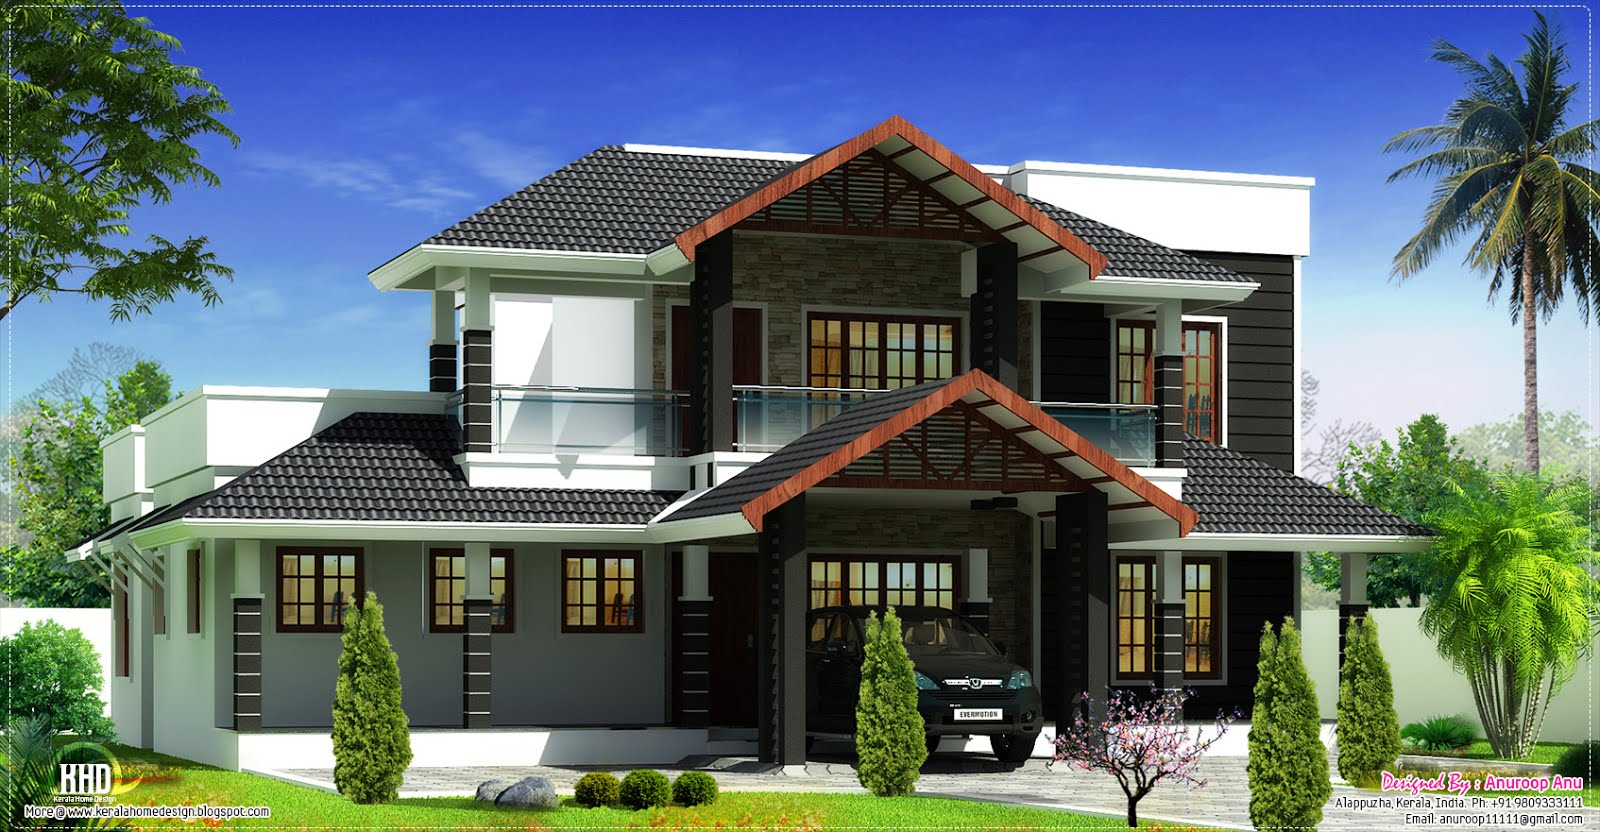 Beautiful sloping roof villa elevation design kerala for Kerala house plans and elevations